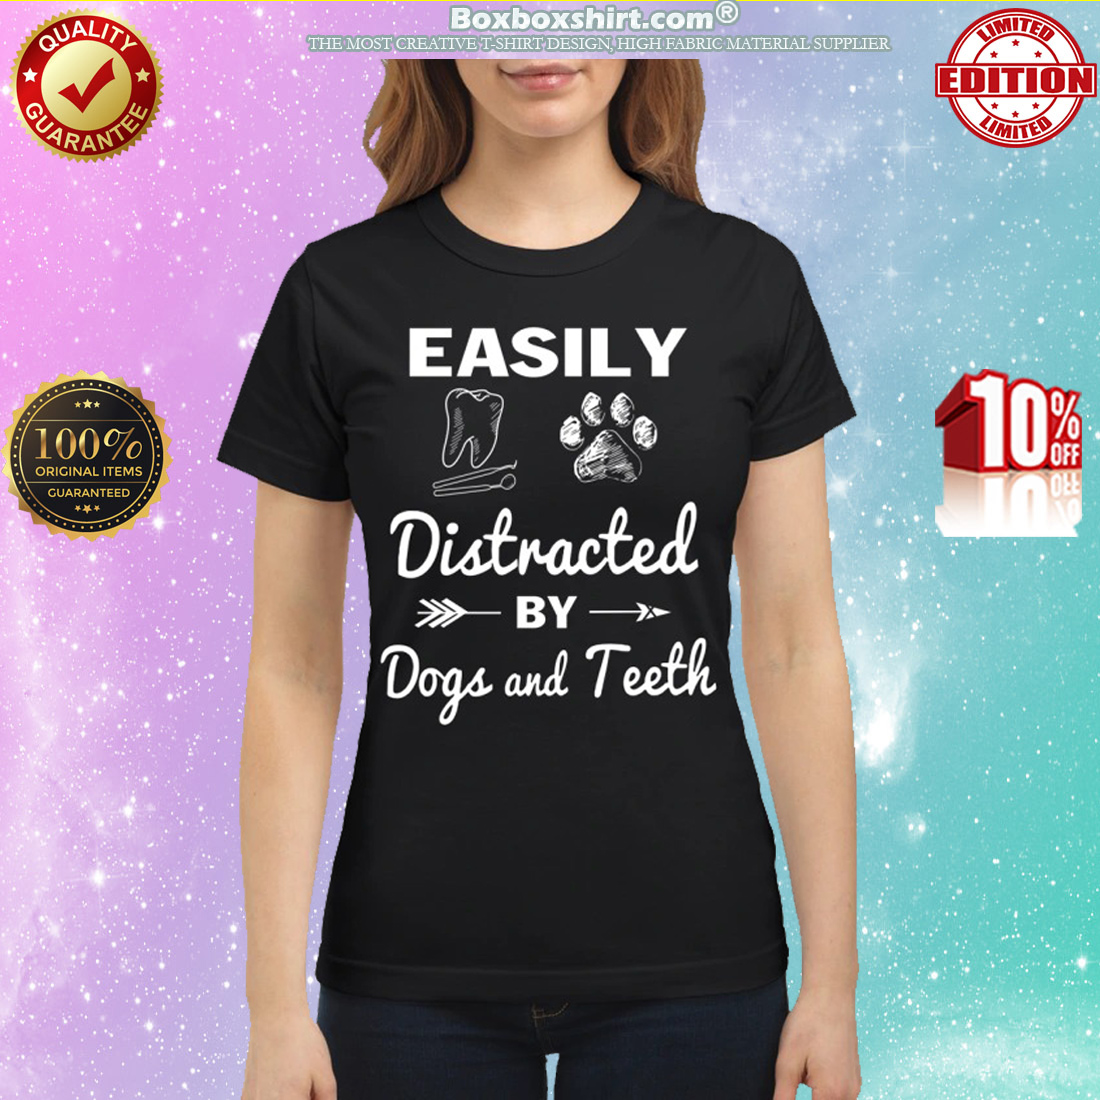 Easily distracted by dogs and teeth classic shirt